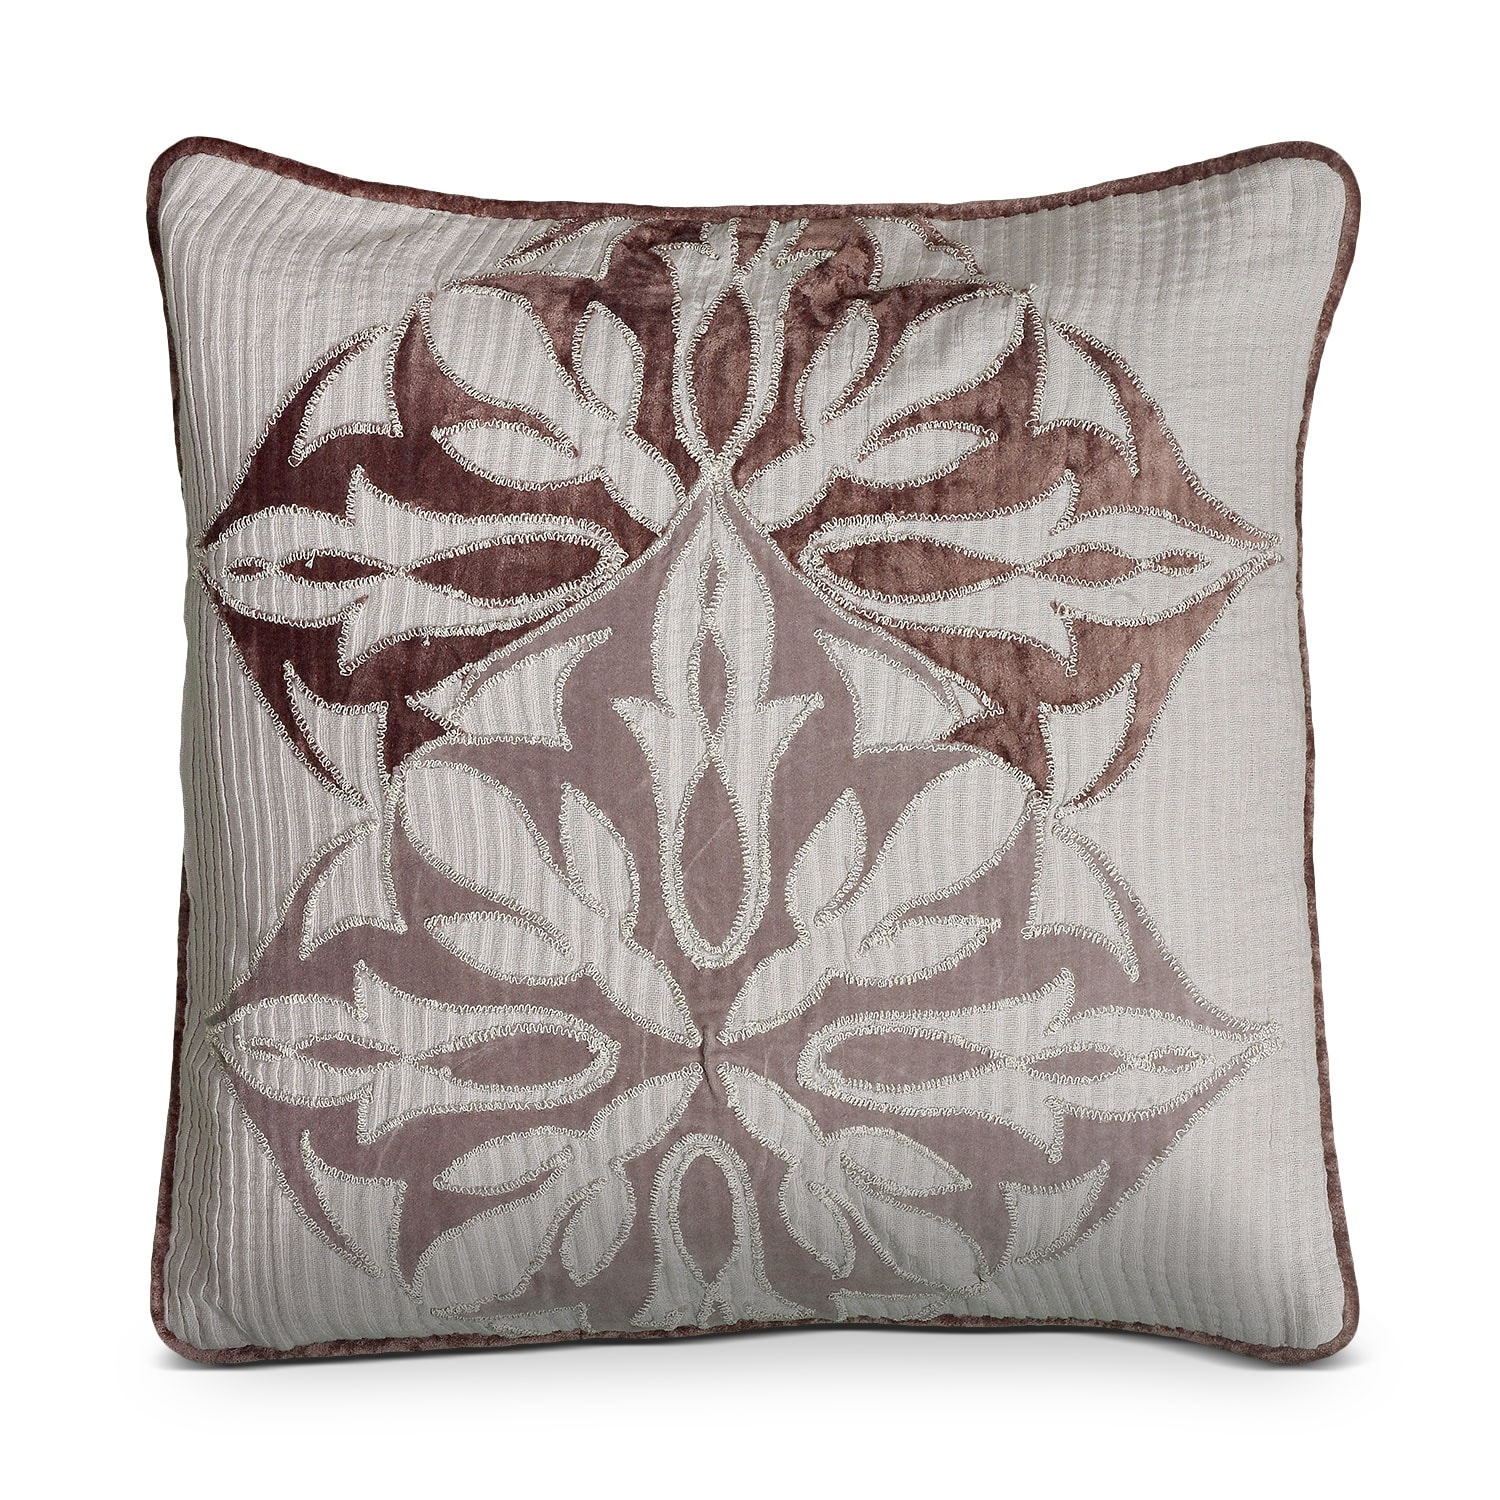 Petal Blush Plum Decorative Pillow